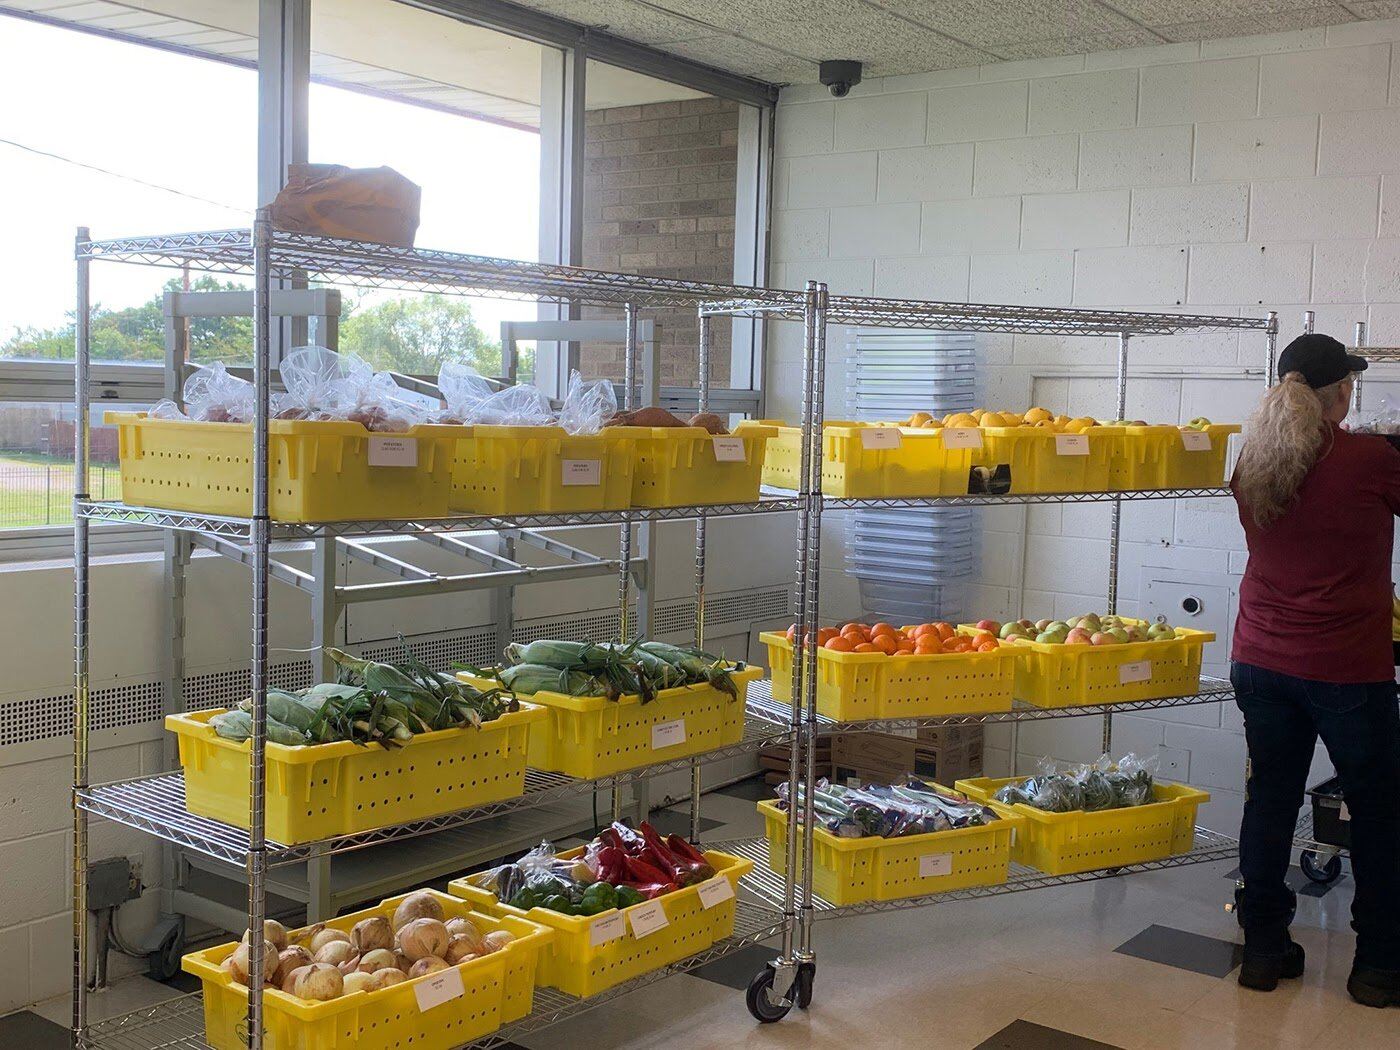 Every Thursday from 4:30 p.m. to 7:00 p.m. Flint Fresh brings a large offering of perishable goods that SBEV families and the greater public can purchase at a discounted price.